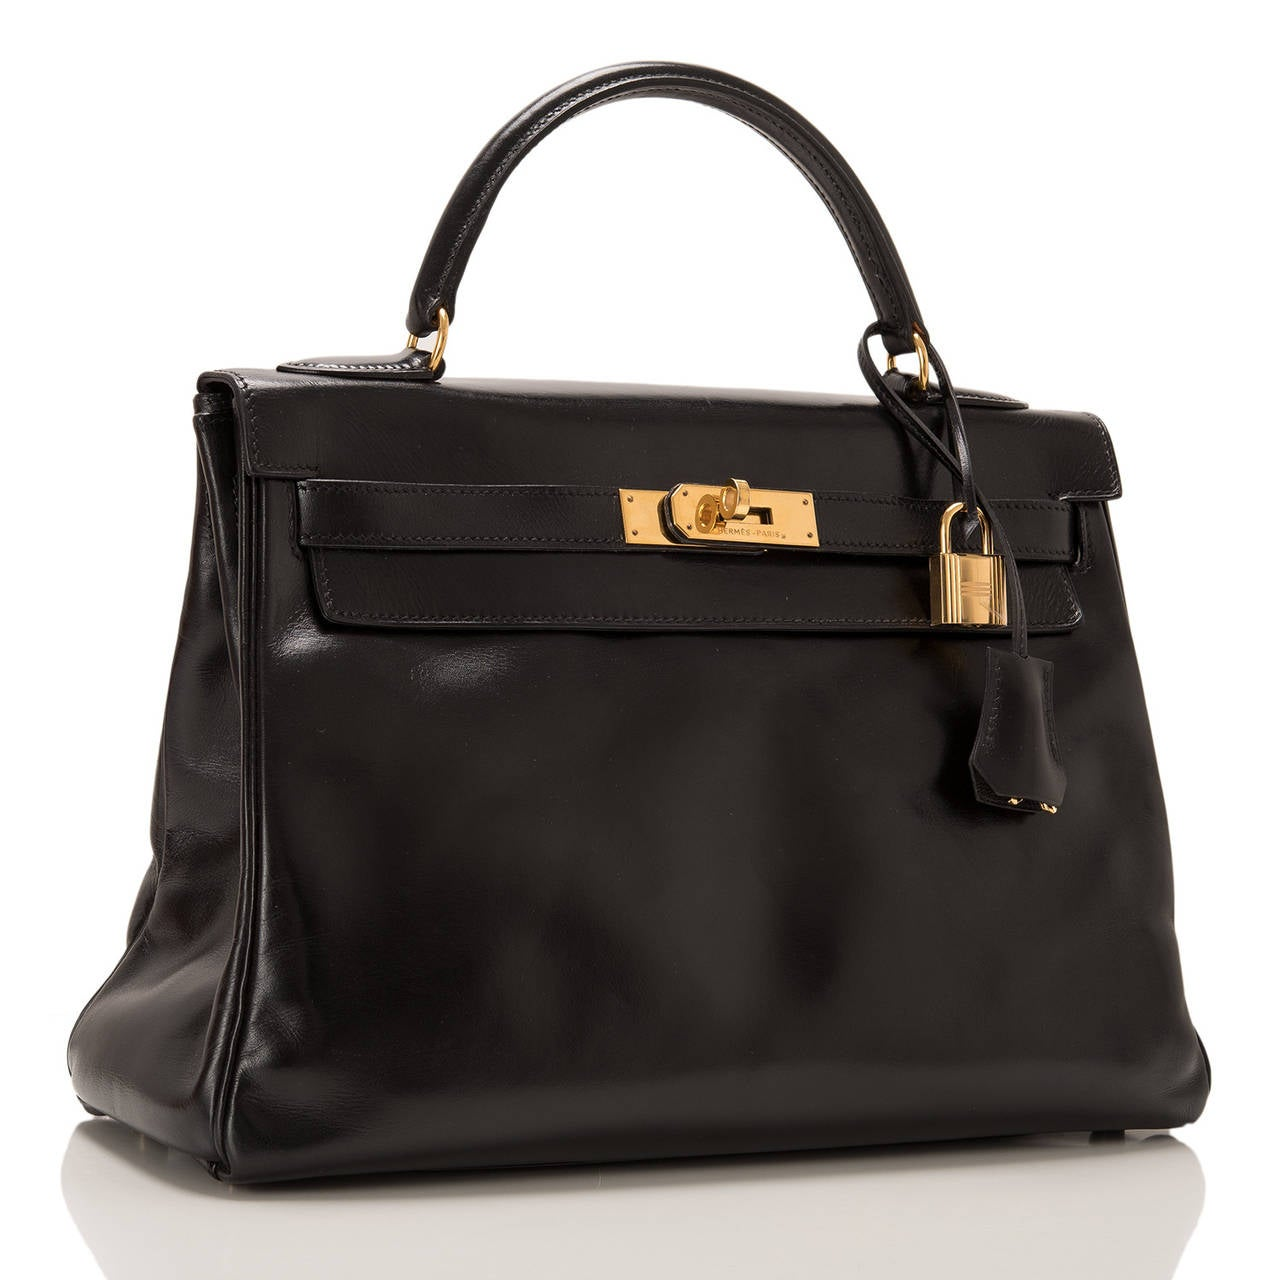 Hermes Black Kelly 32cm in box calf leather with gold hardware.  This Kelly features tonal stitching, front toggle closure, a clochette with lock and two keys and a single rolled handle. The interior is lined in Black chevre and features one zip